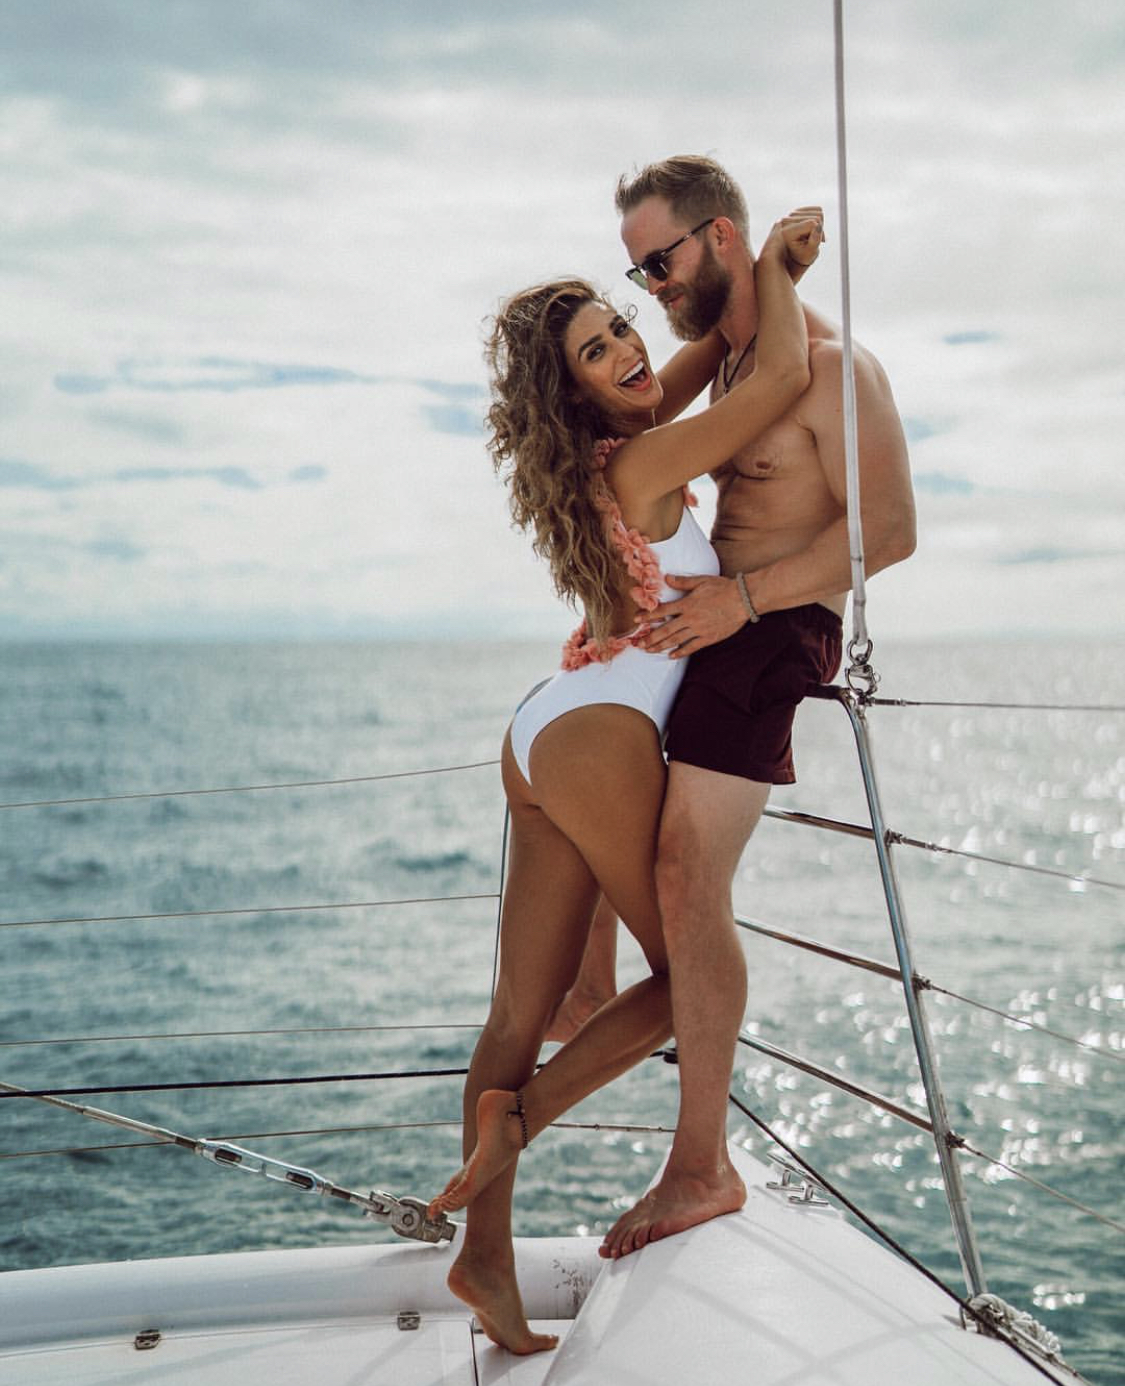 A couple poses on a boat in Jamaica